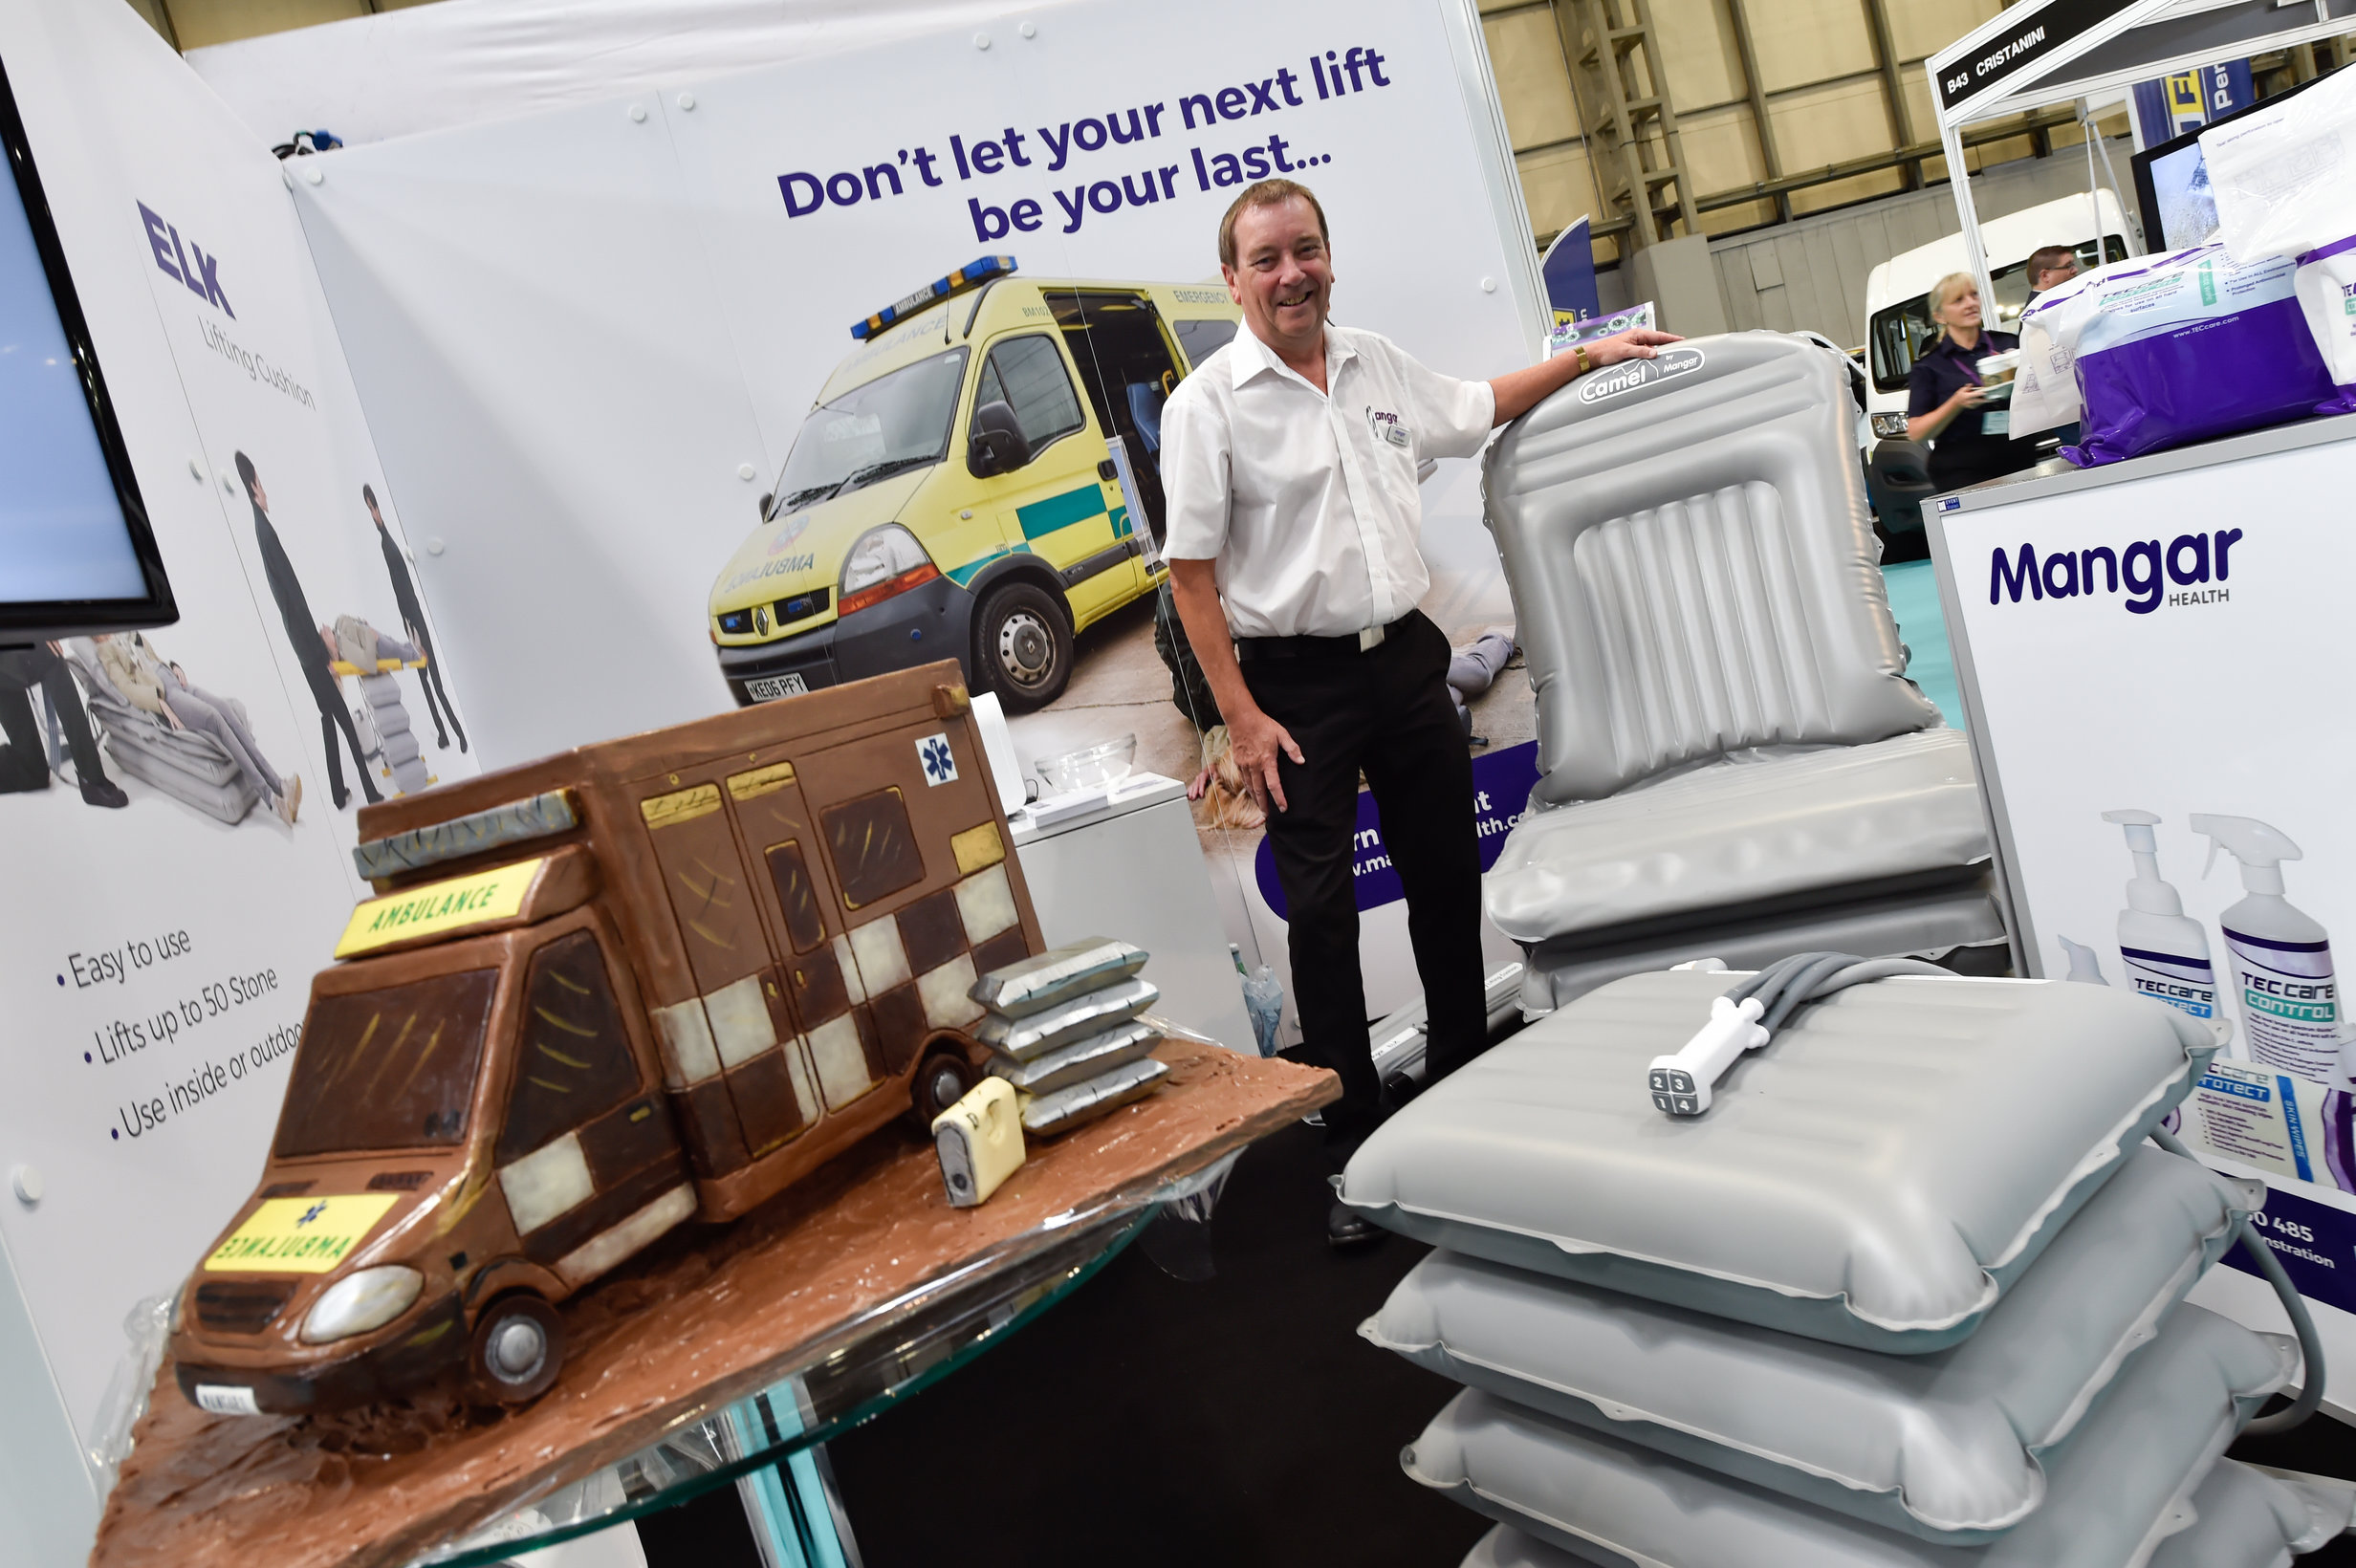 Successful Launch of Mangar Health Cleaning Products At Emergency Services Show